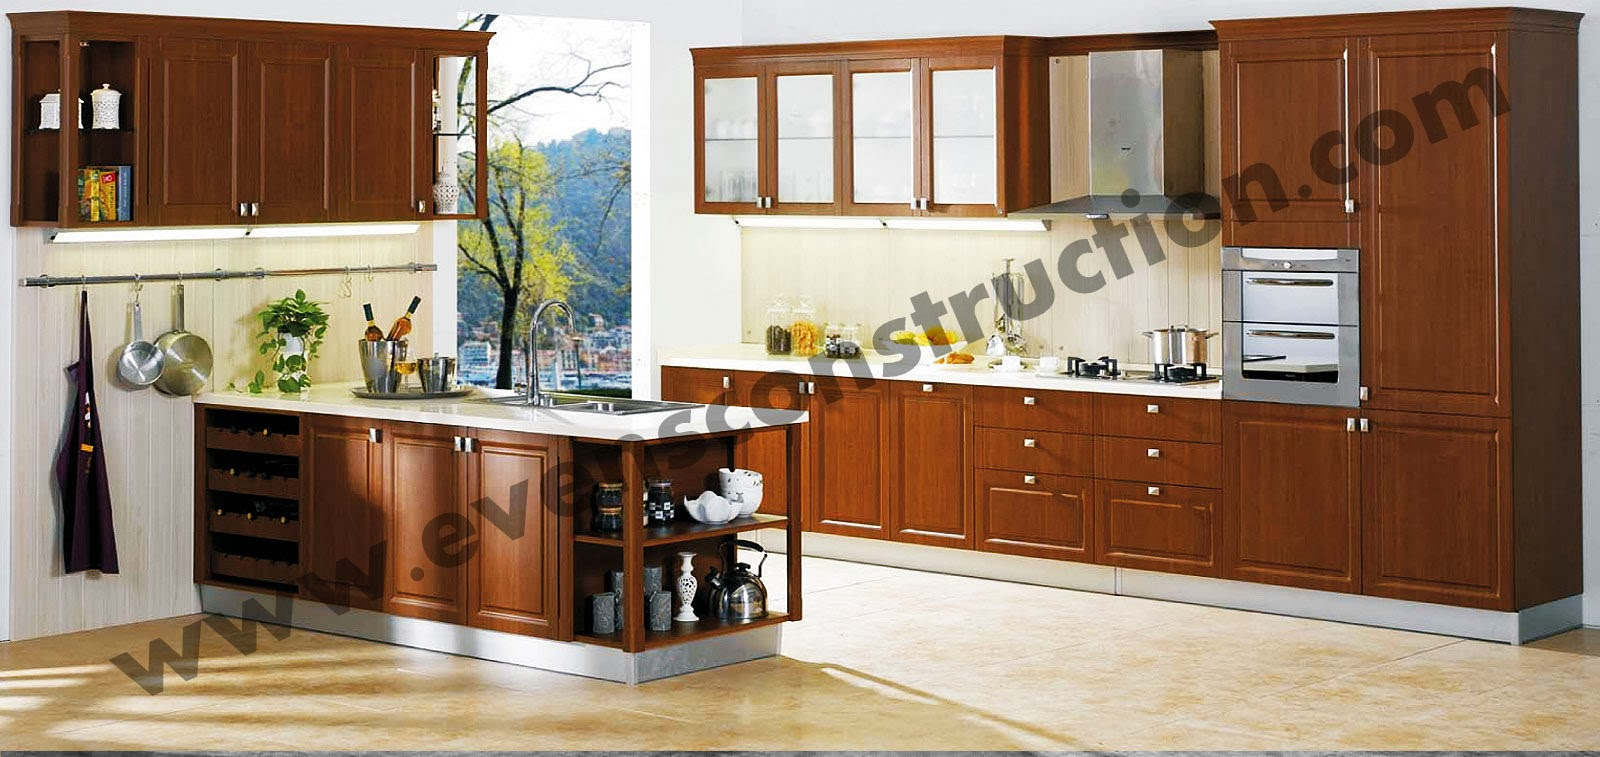 Remarkable Modular Kitchen CabiDesign 1600 x 757 · 218 kB · jpeg